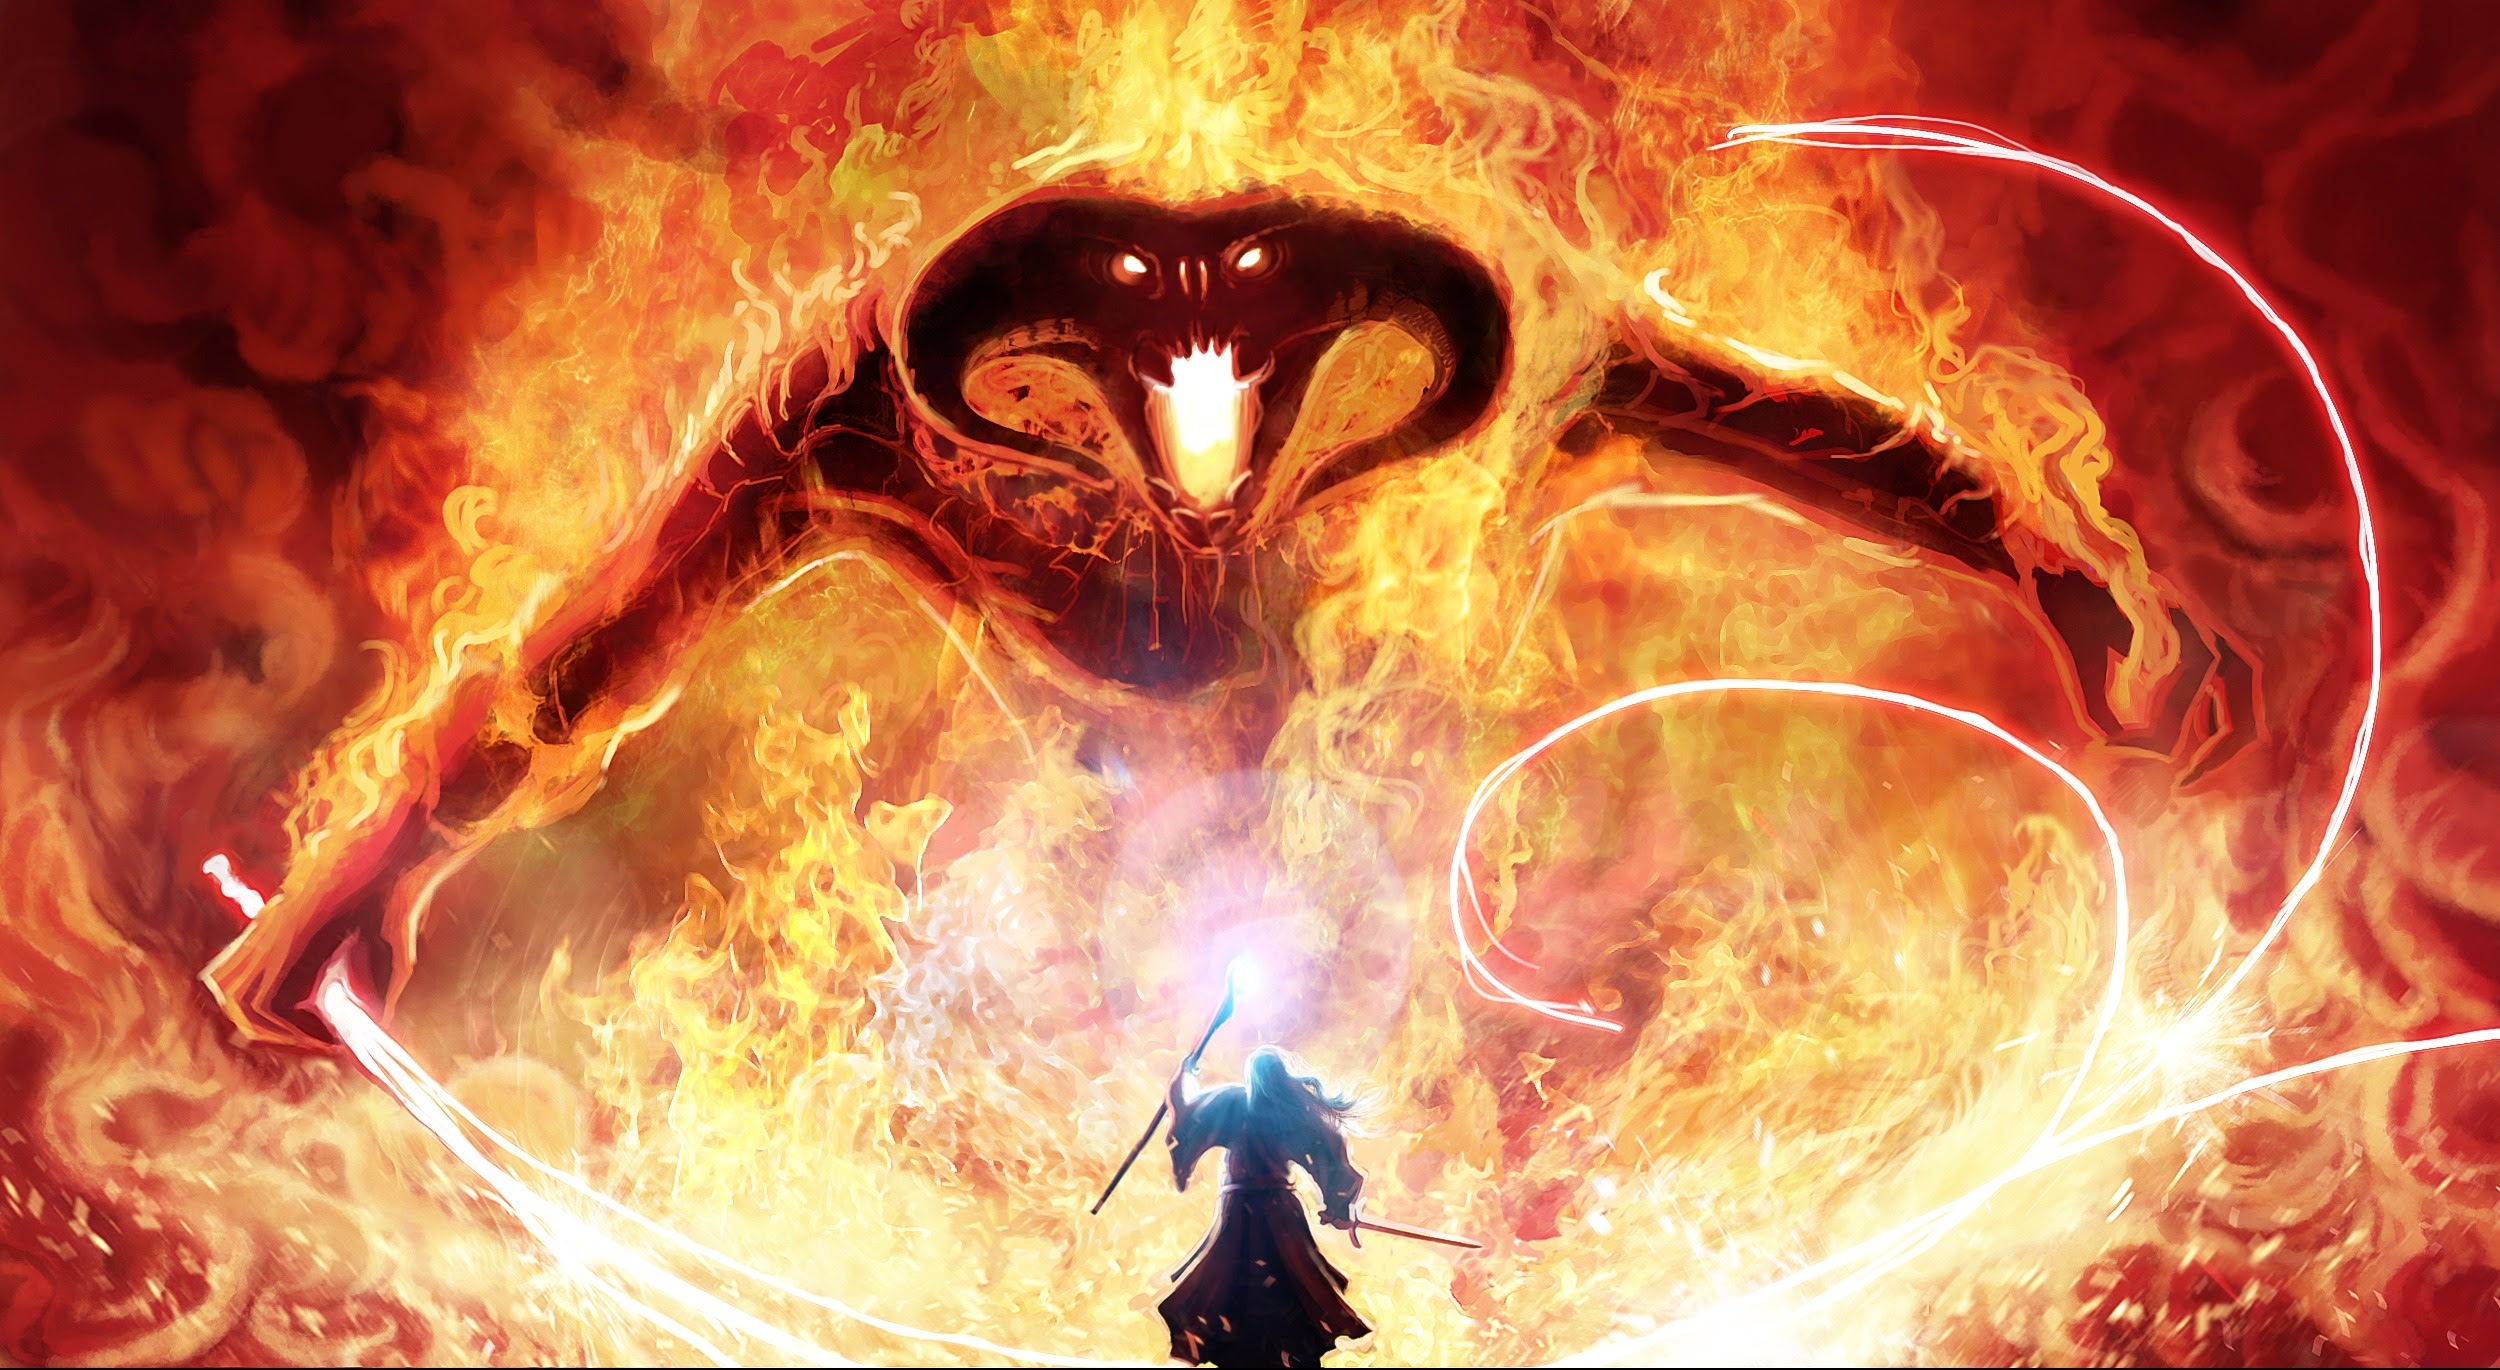 Wallpaper Lord Of The Rings Balrog Gandalf Fire Tolkien Magic